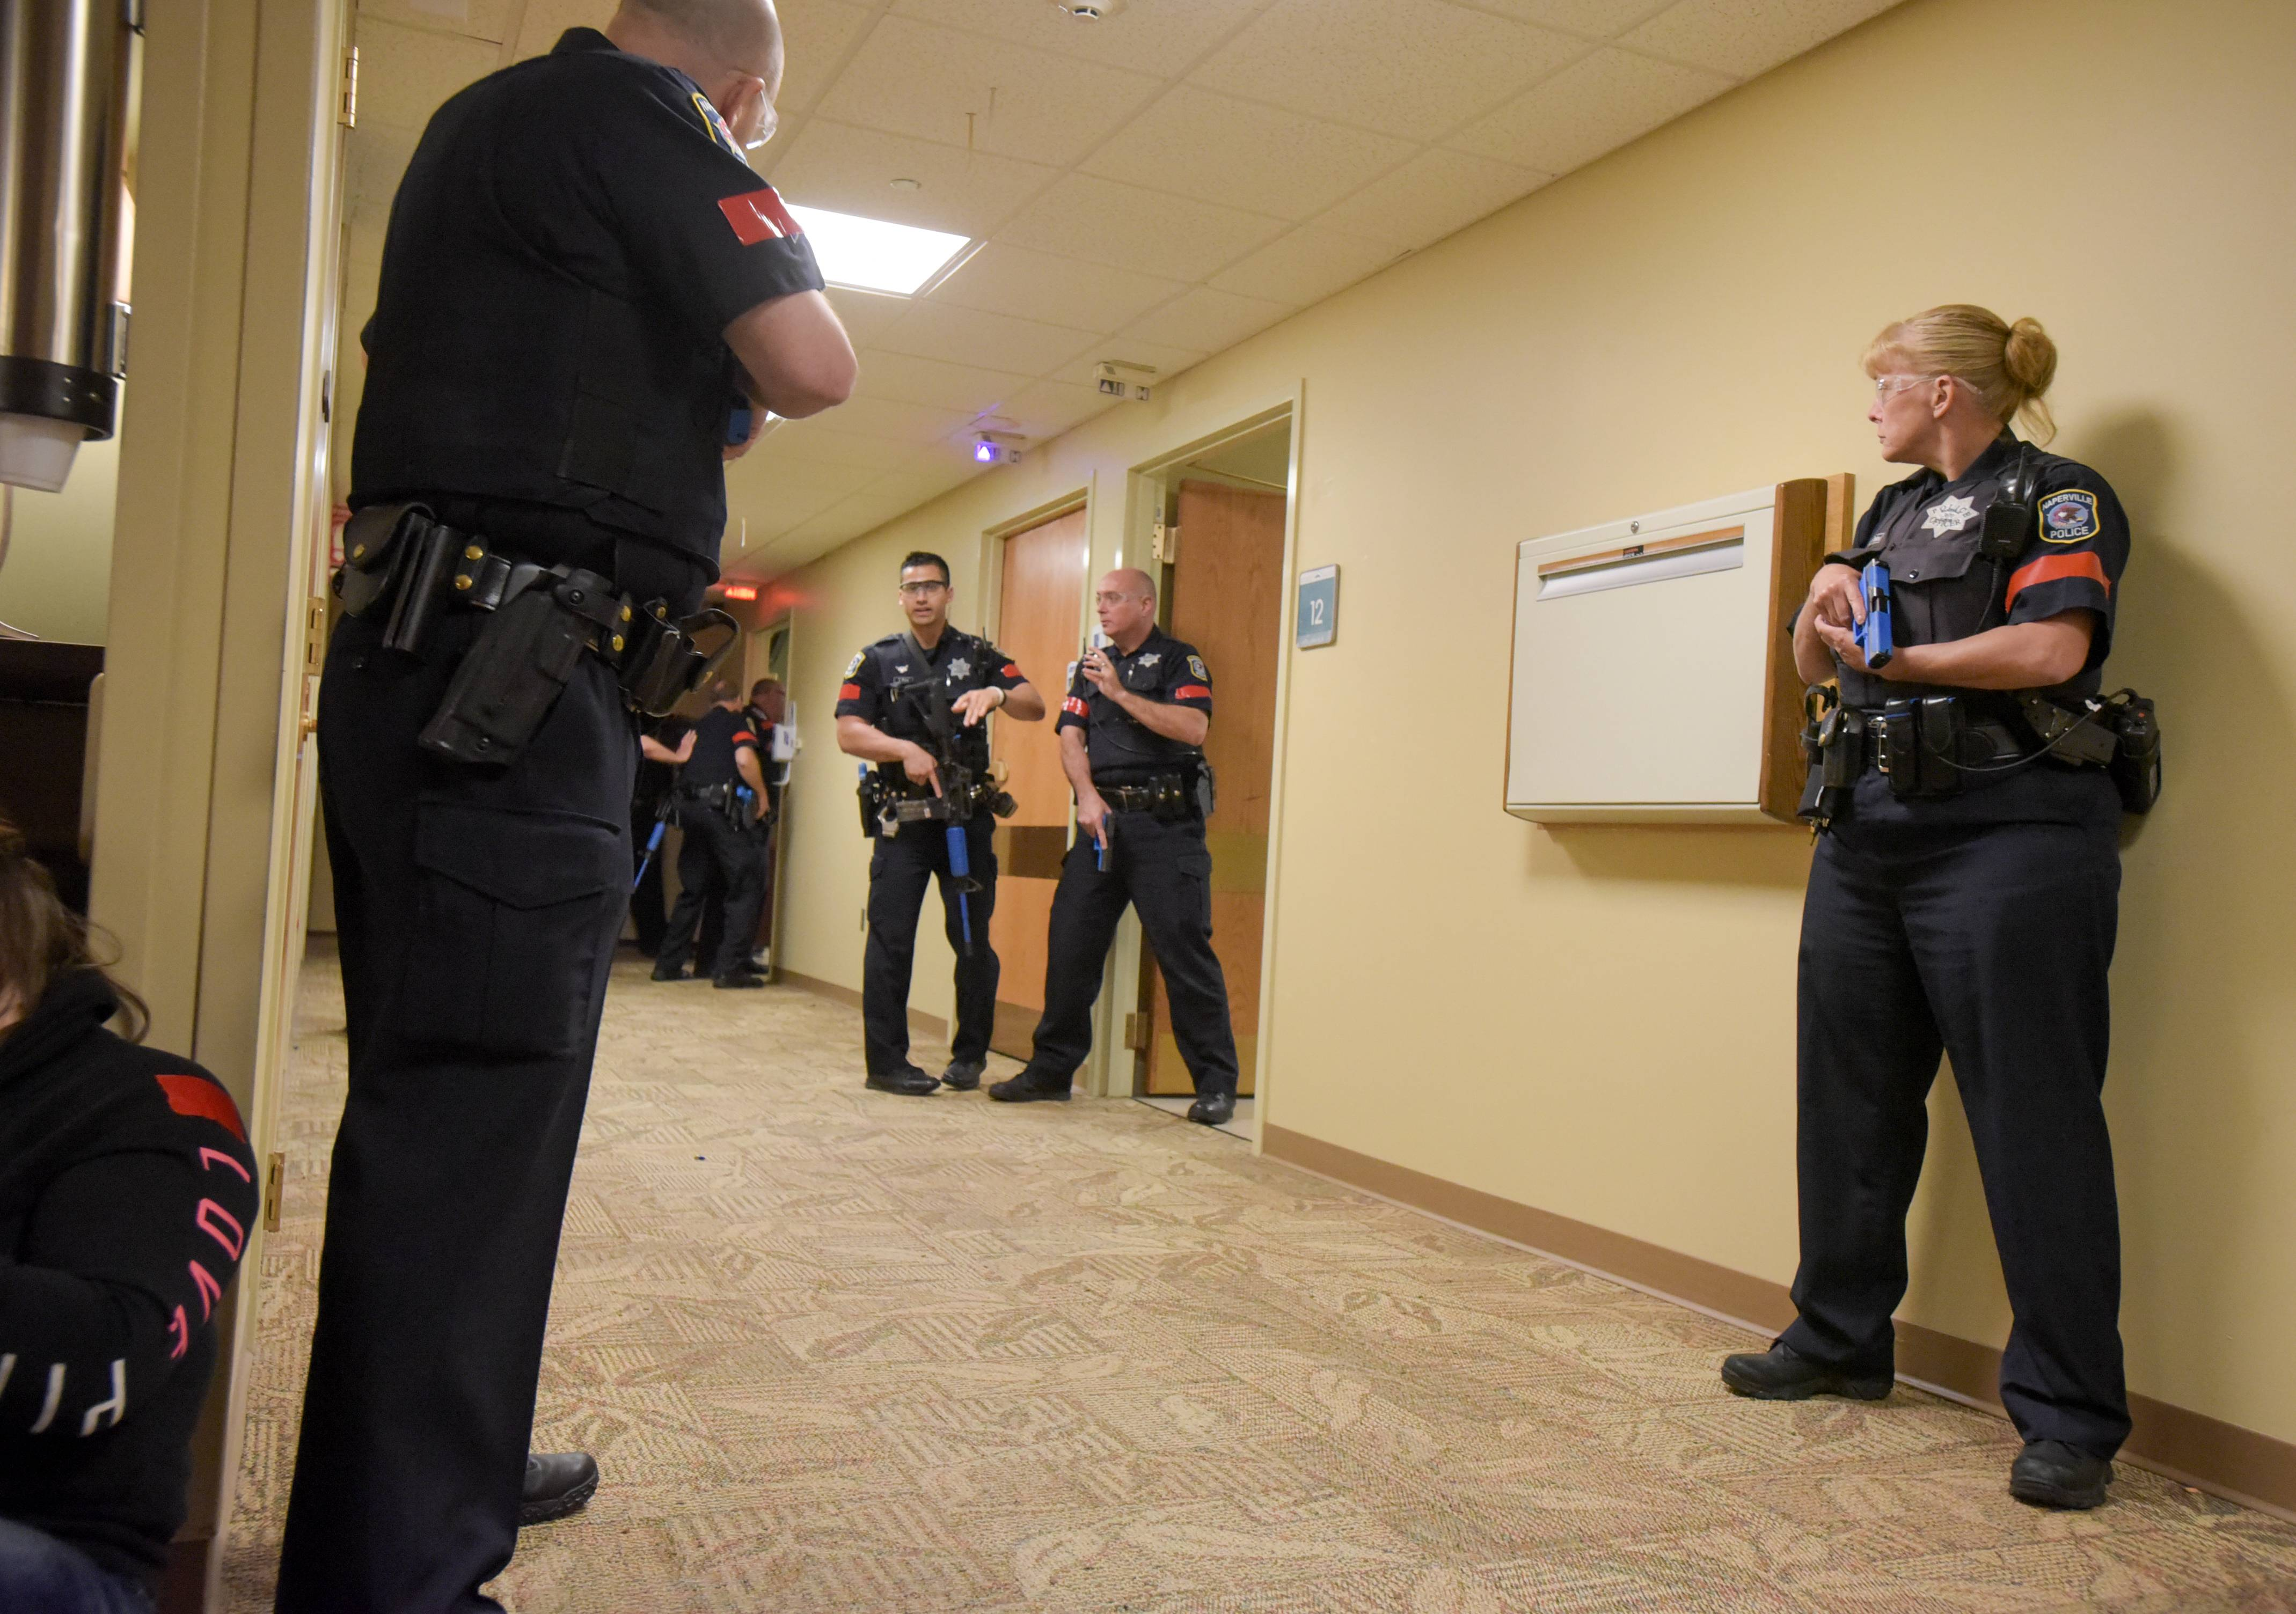 Naperville police officers secure a hallway Thursday morning during an active shooter drill at Edward Hospital.